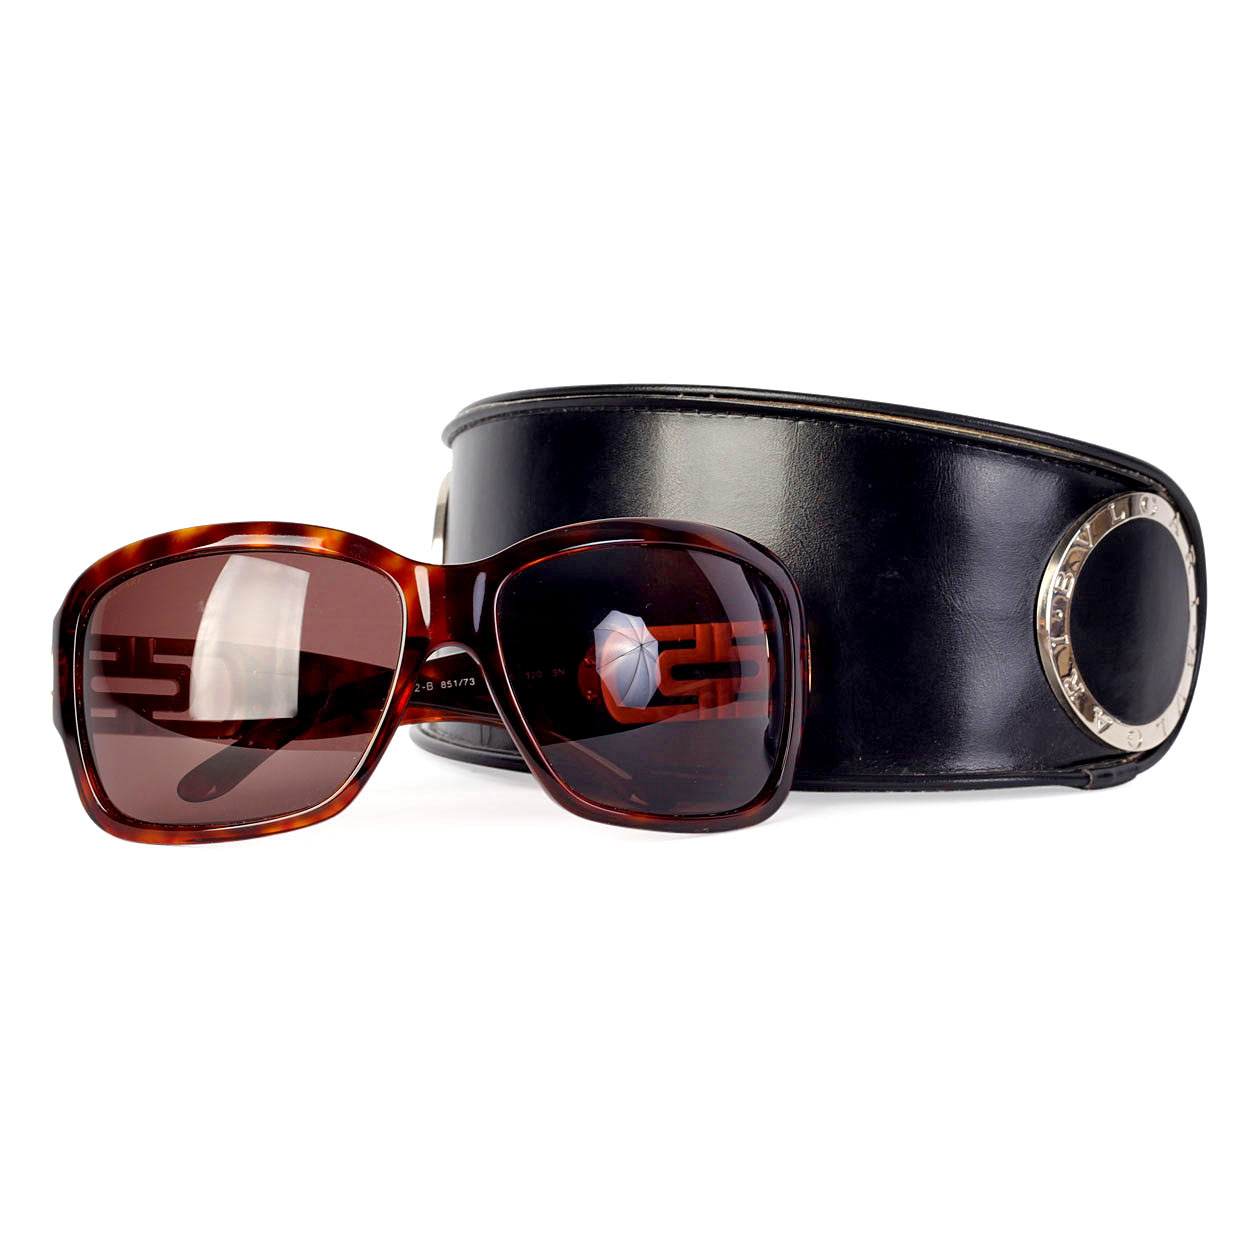 83197656a97 Bvlgari Sunglasses With Swarovski Crystals - Bitterroot Public Library